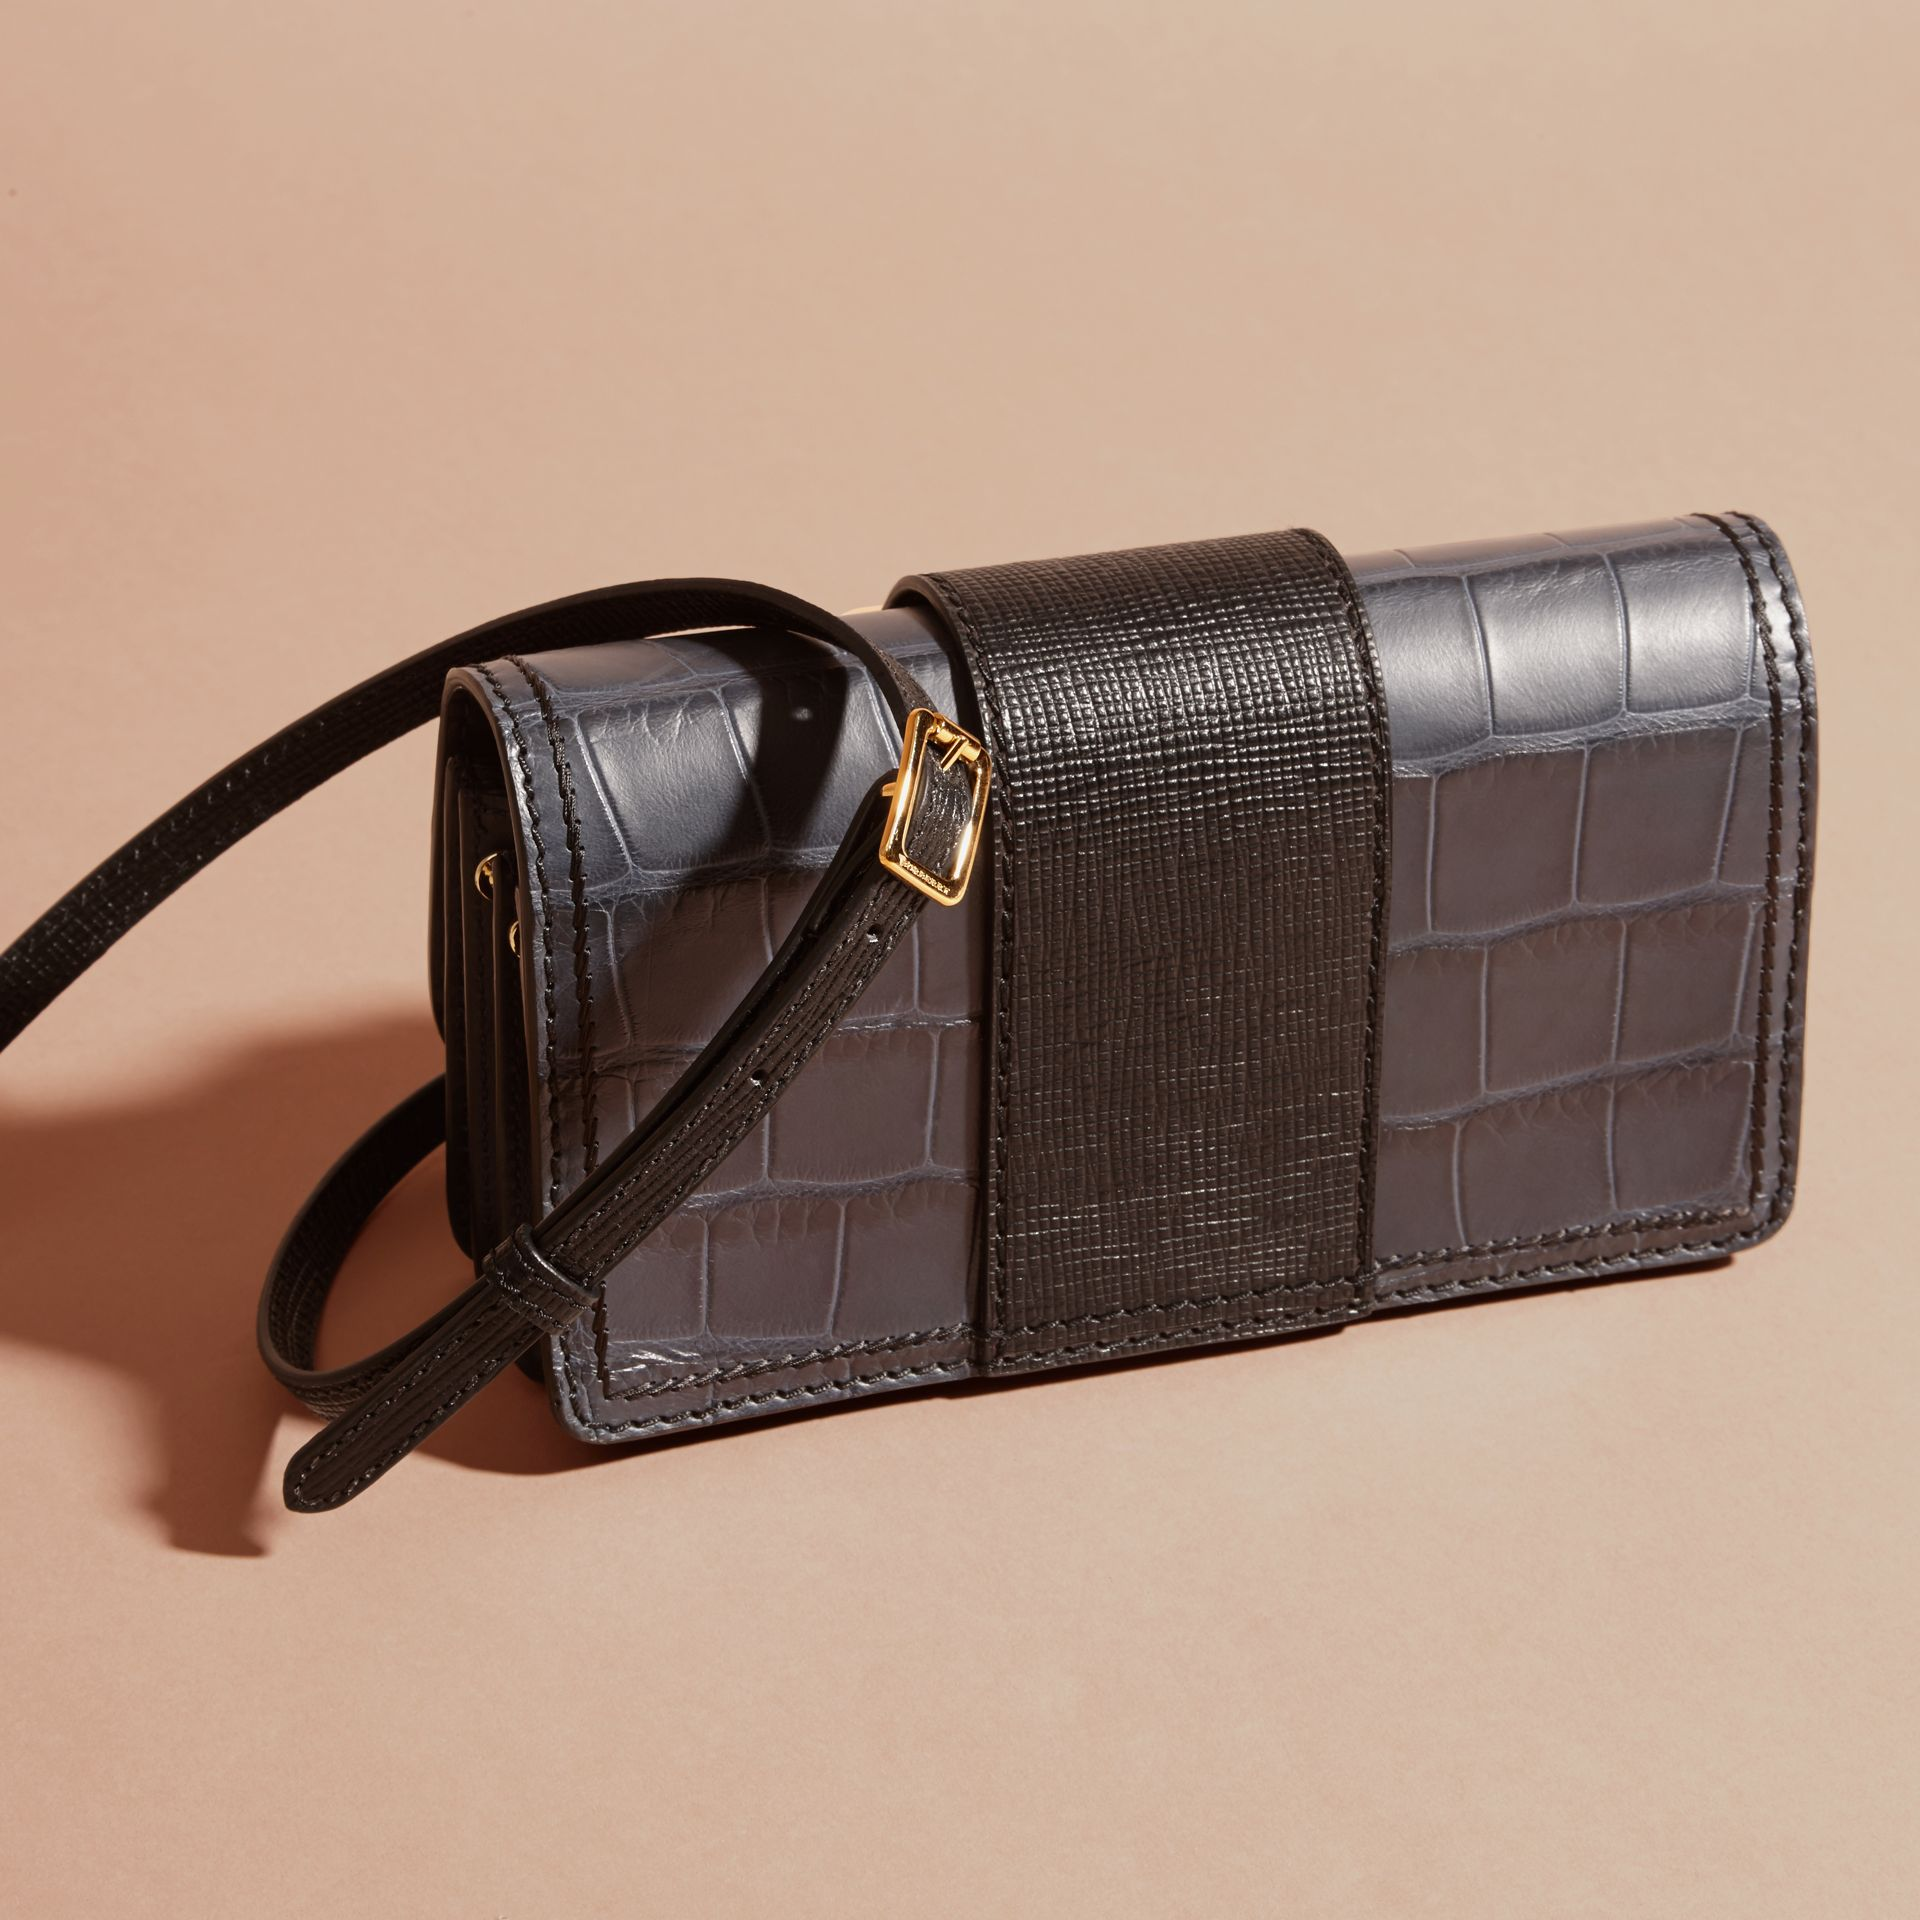 The Small Buckle Bag in Alligator and Leather in Navy / Black - gallery image 5